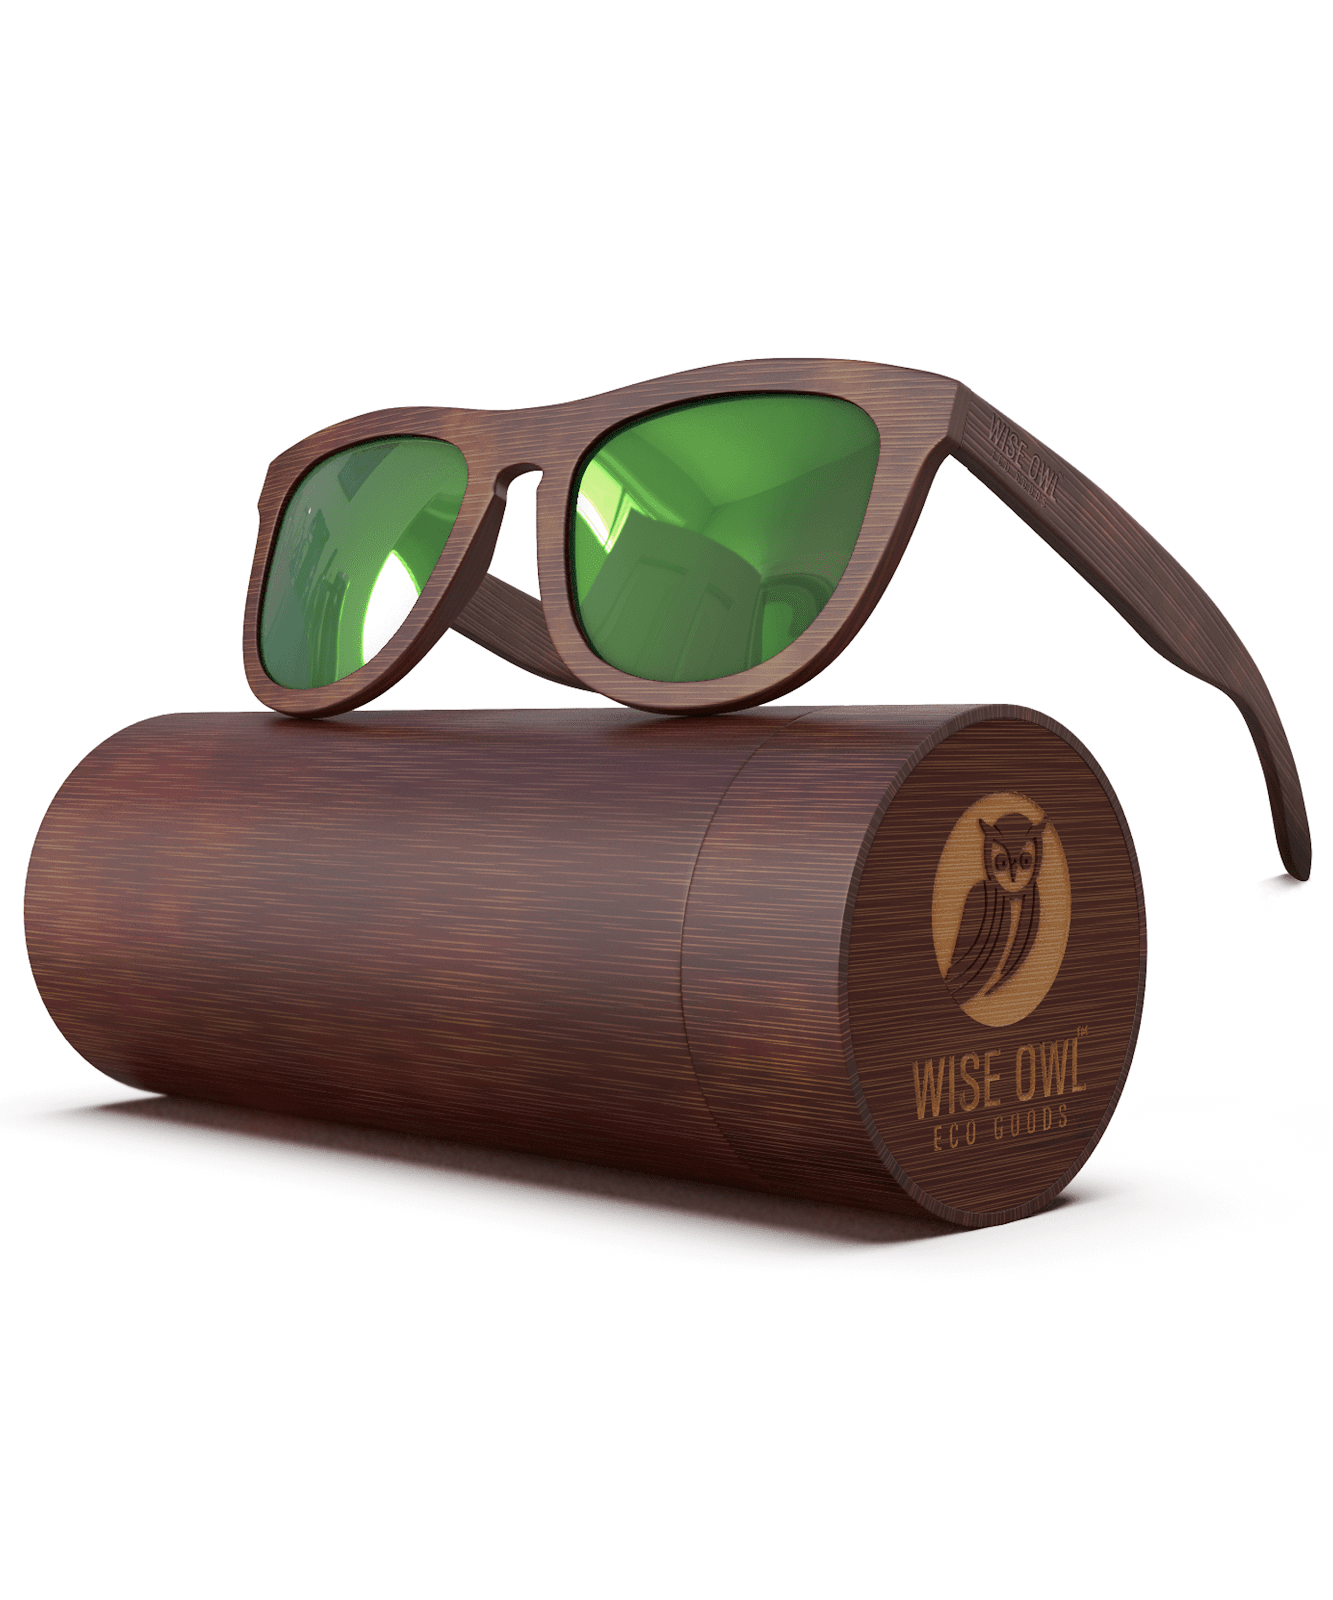 Wise Owl Power Green Sunglasses